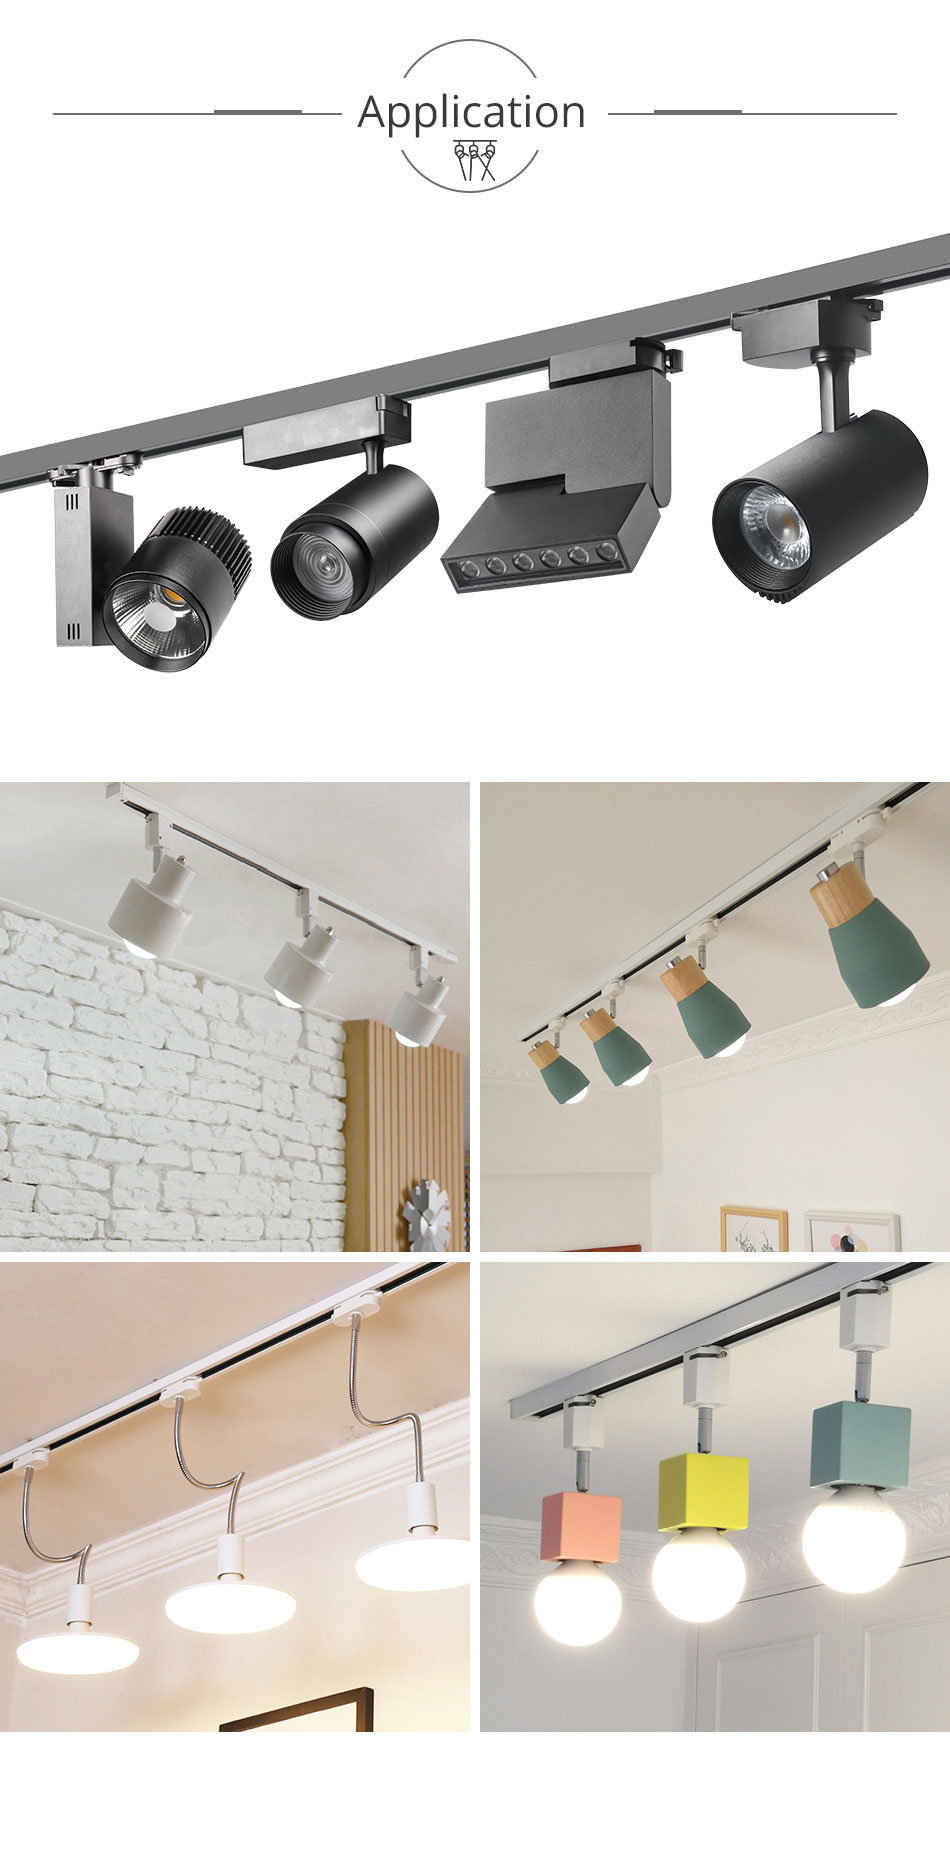 Track Rail 1m Track Light Fitting Aluminum 1 meter 2 wire Connector System Tracks Fixture black white Universal Rails 10pcslot (10)